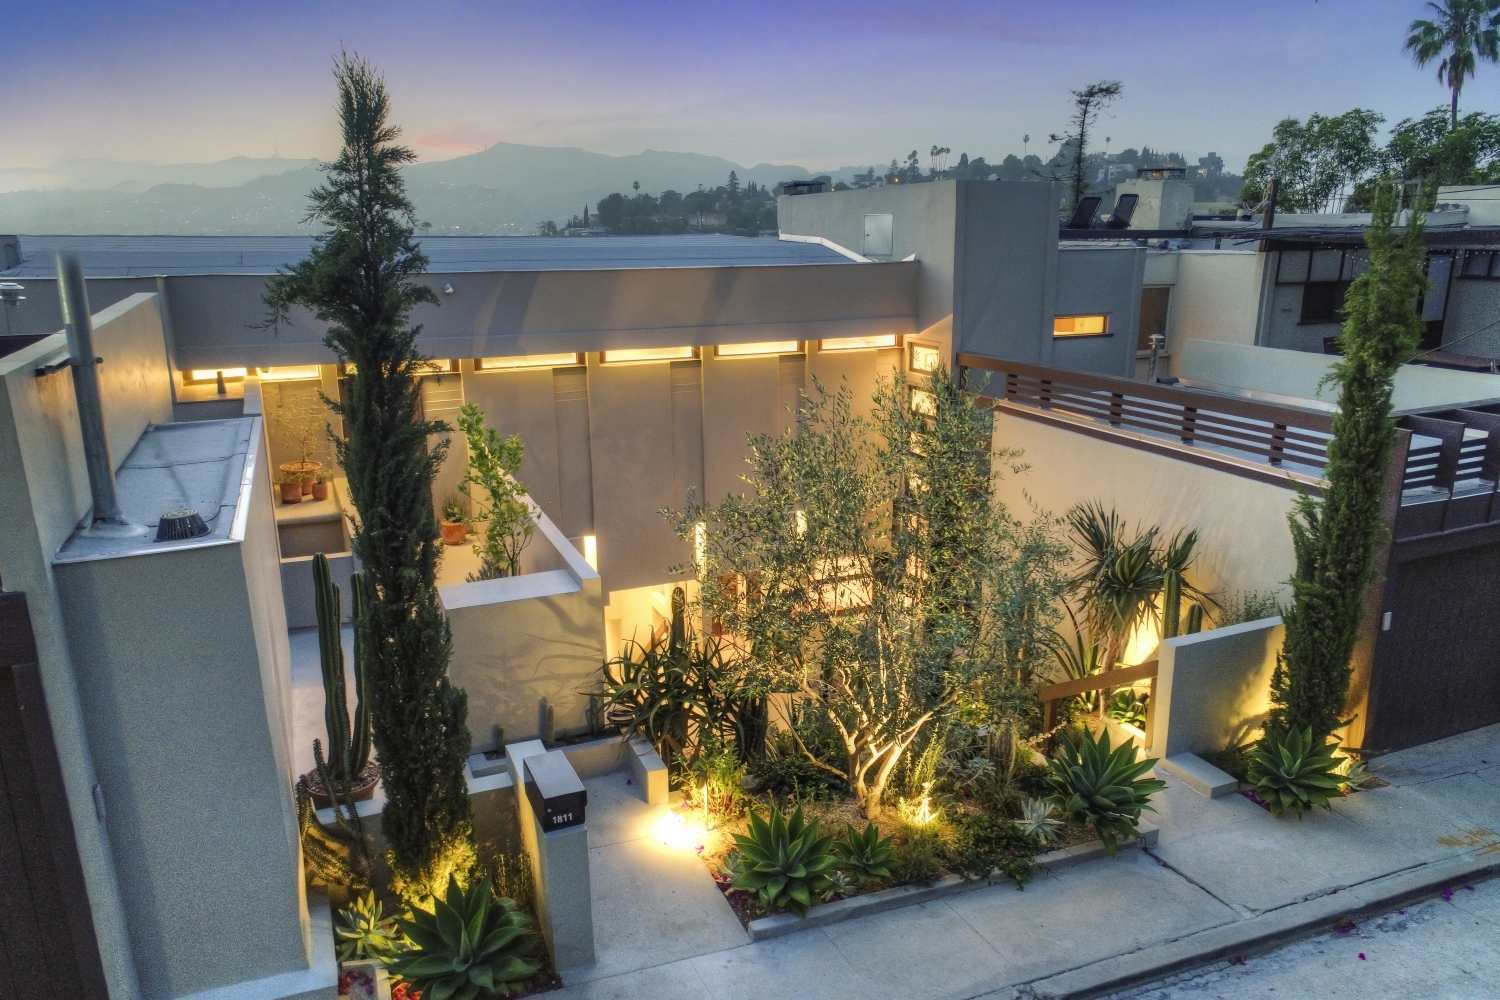 Overview of the Penthouse and adjacent cactus courtyard at Manola Court.